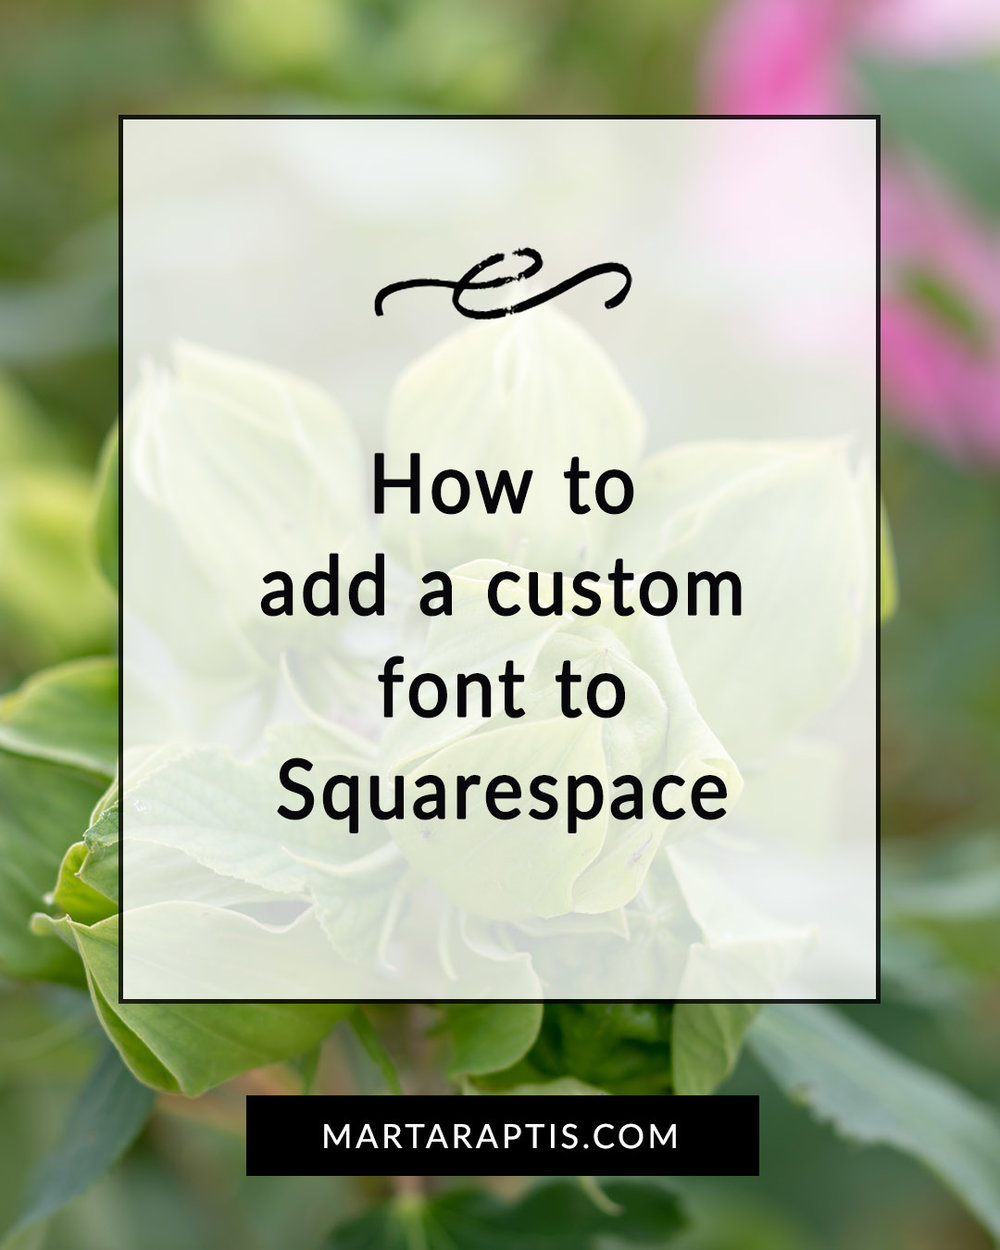 how to add a custom font in Squarespace